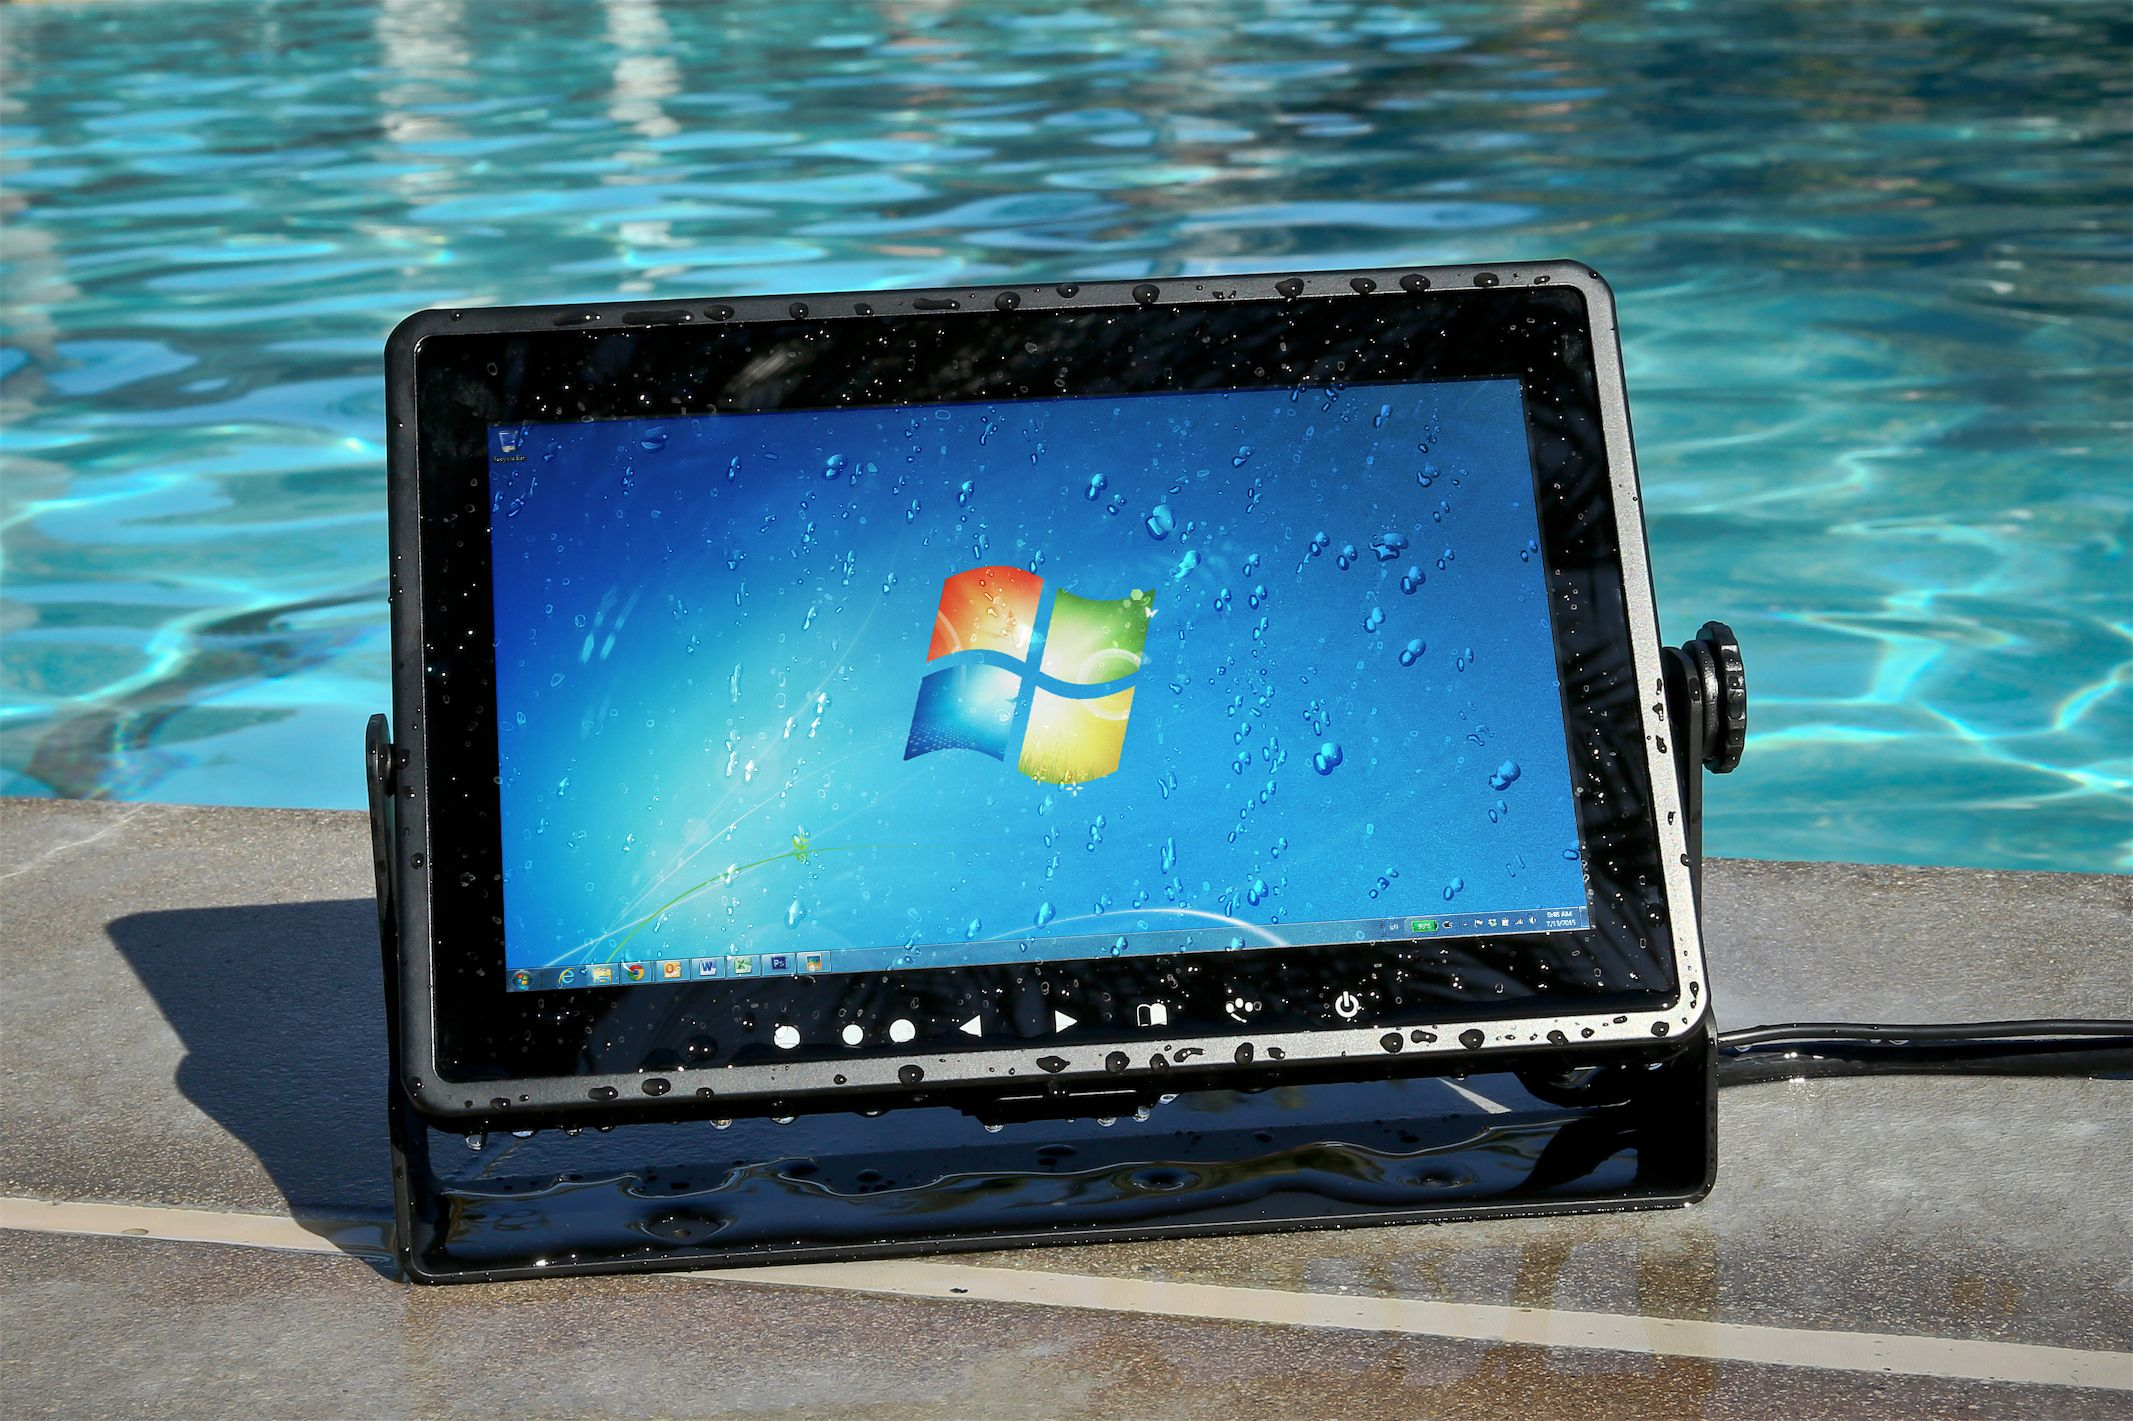 Waterproof Lcd Led Touchscreen Monitor By Xenarc Technologies Lcd Monitor Touch Screen Hdmi